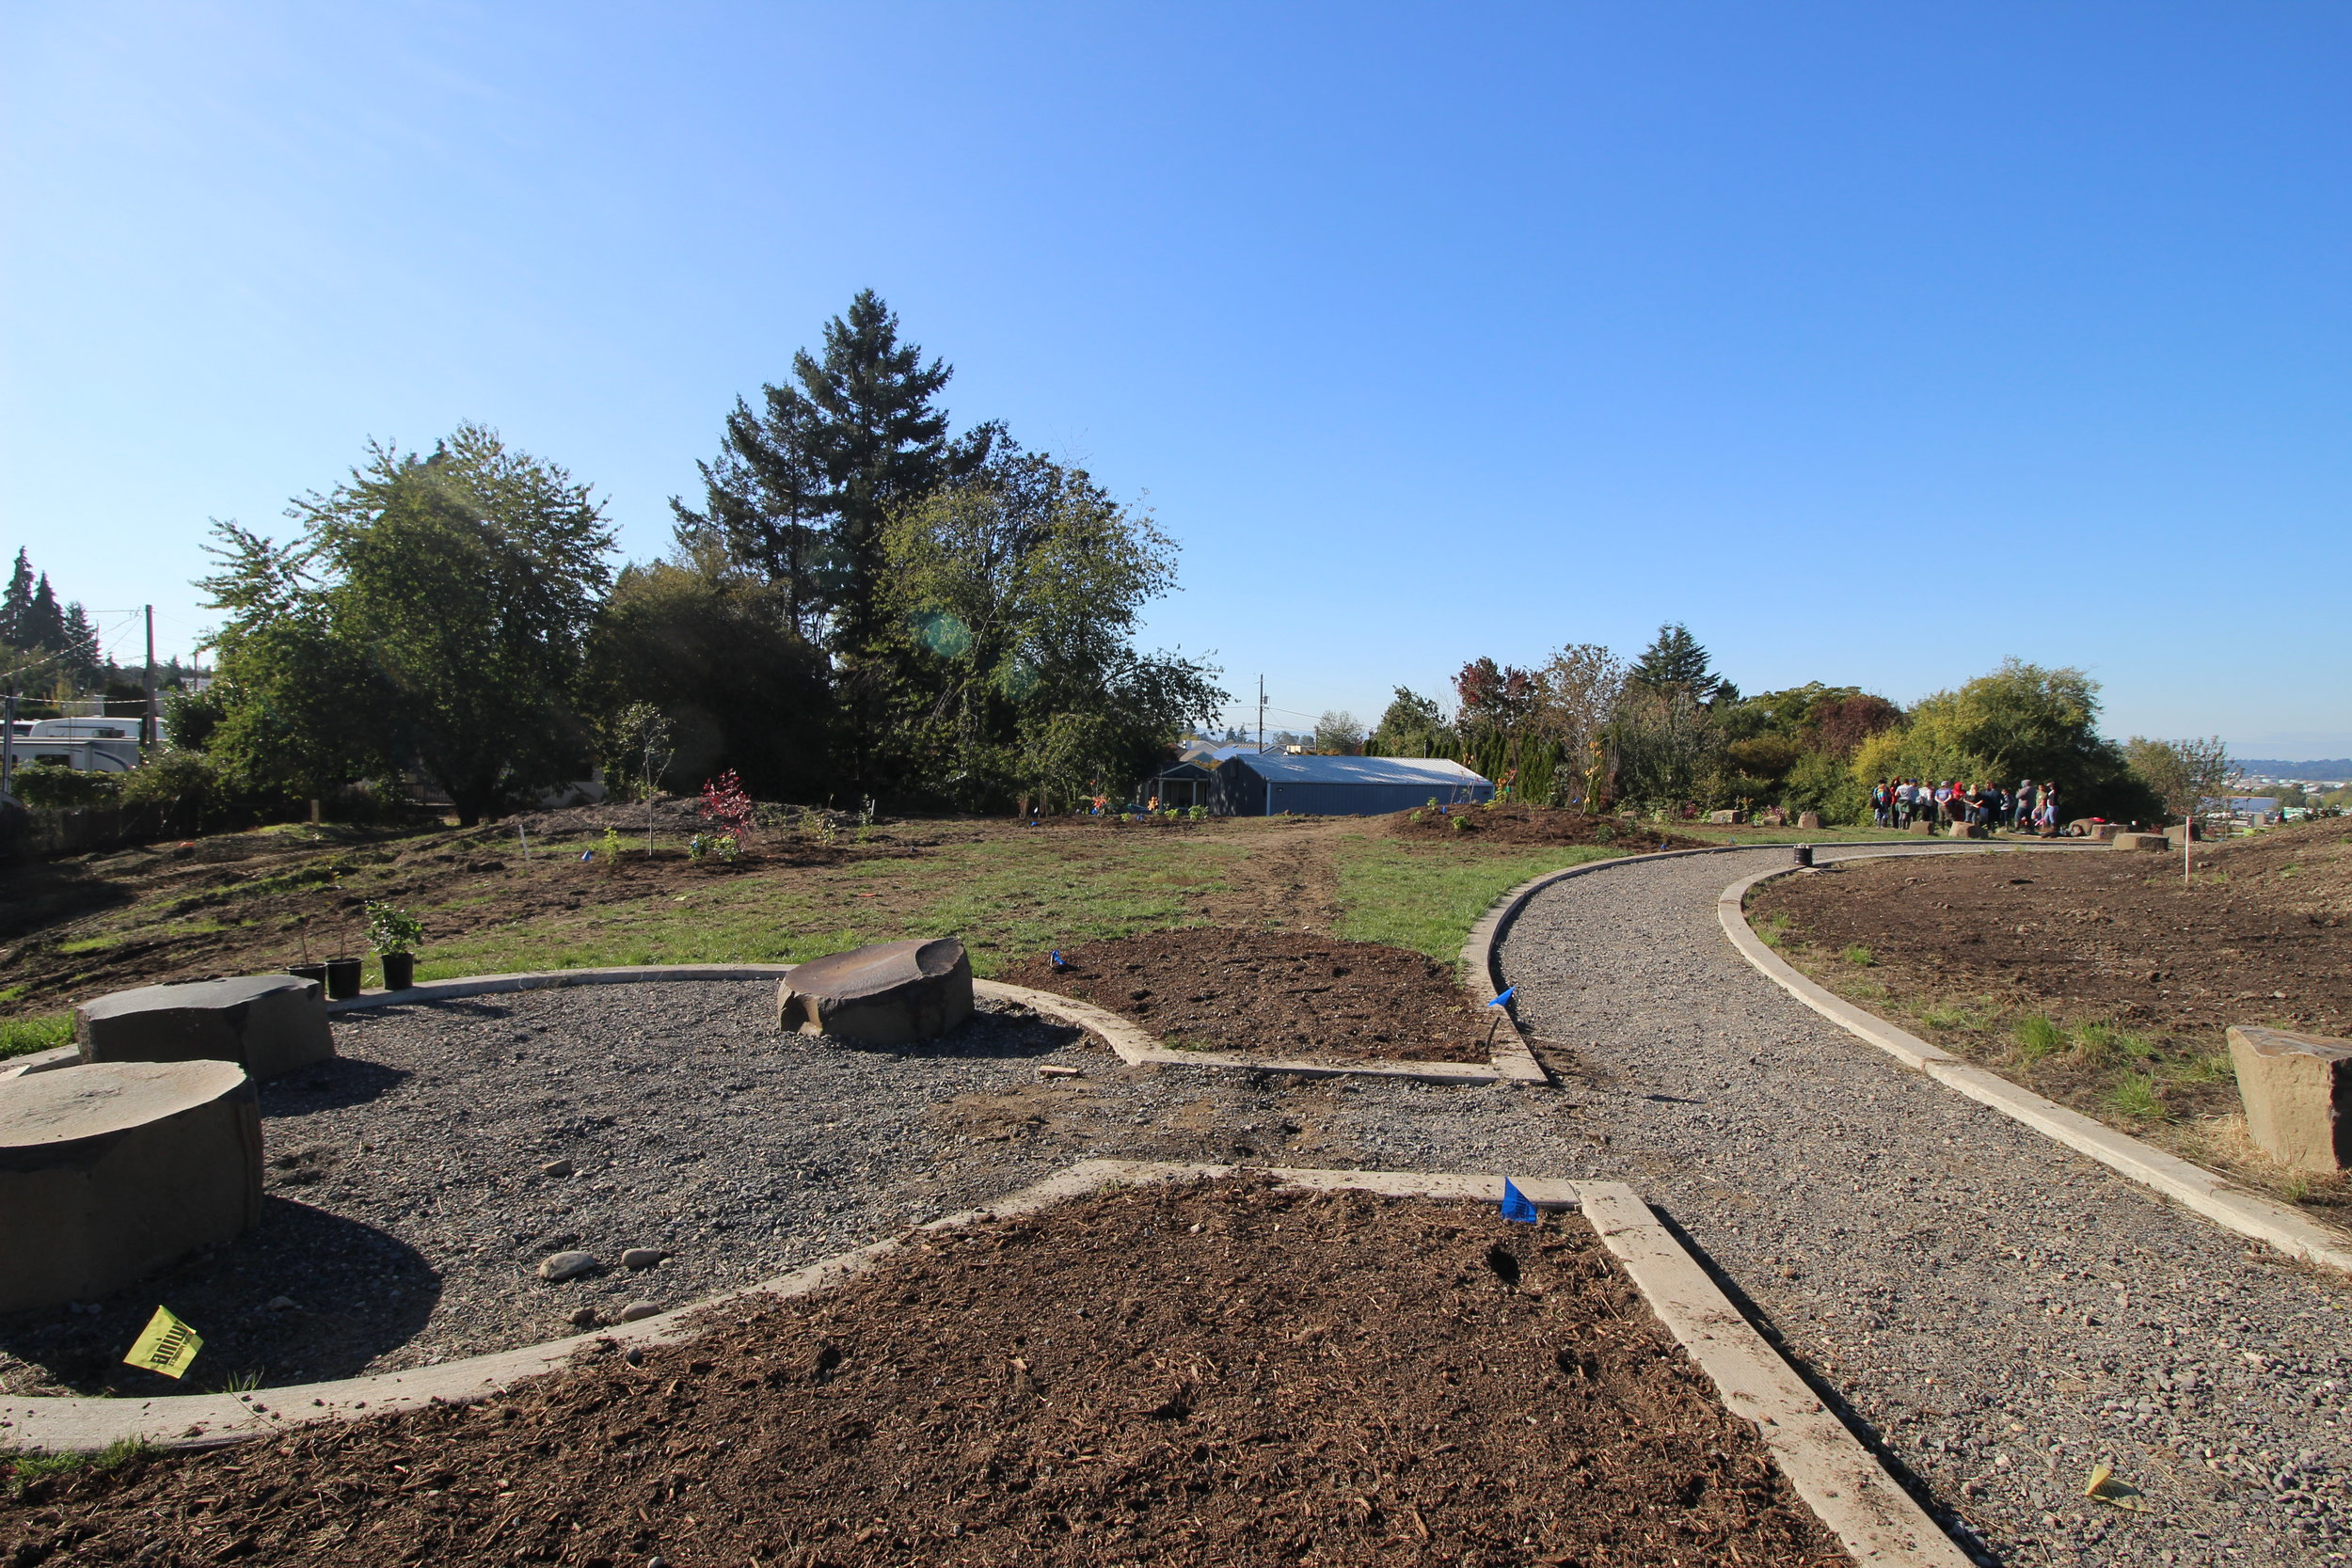 The Native Gathering Garden includes a food forest, designed with sitting areas to provide natural spaces for workshops and classes.